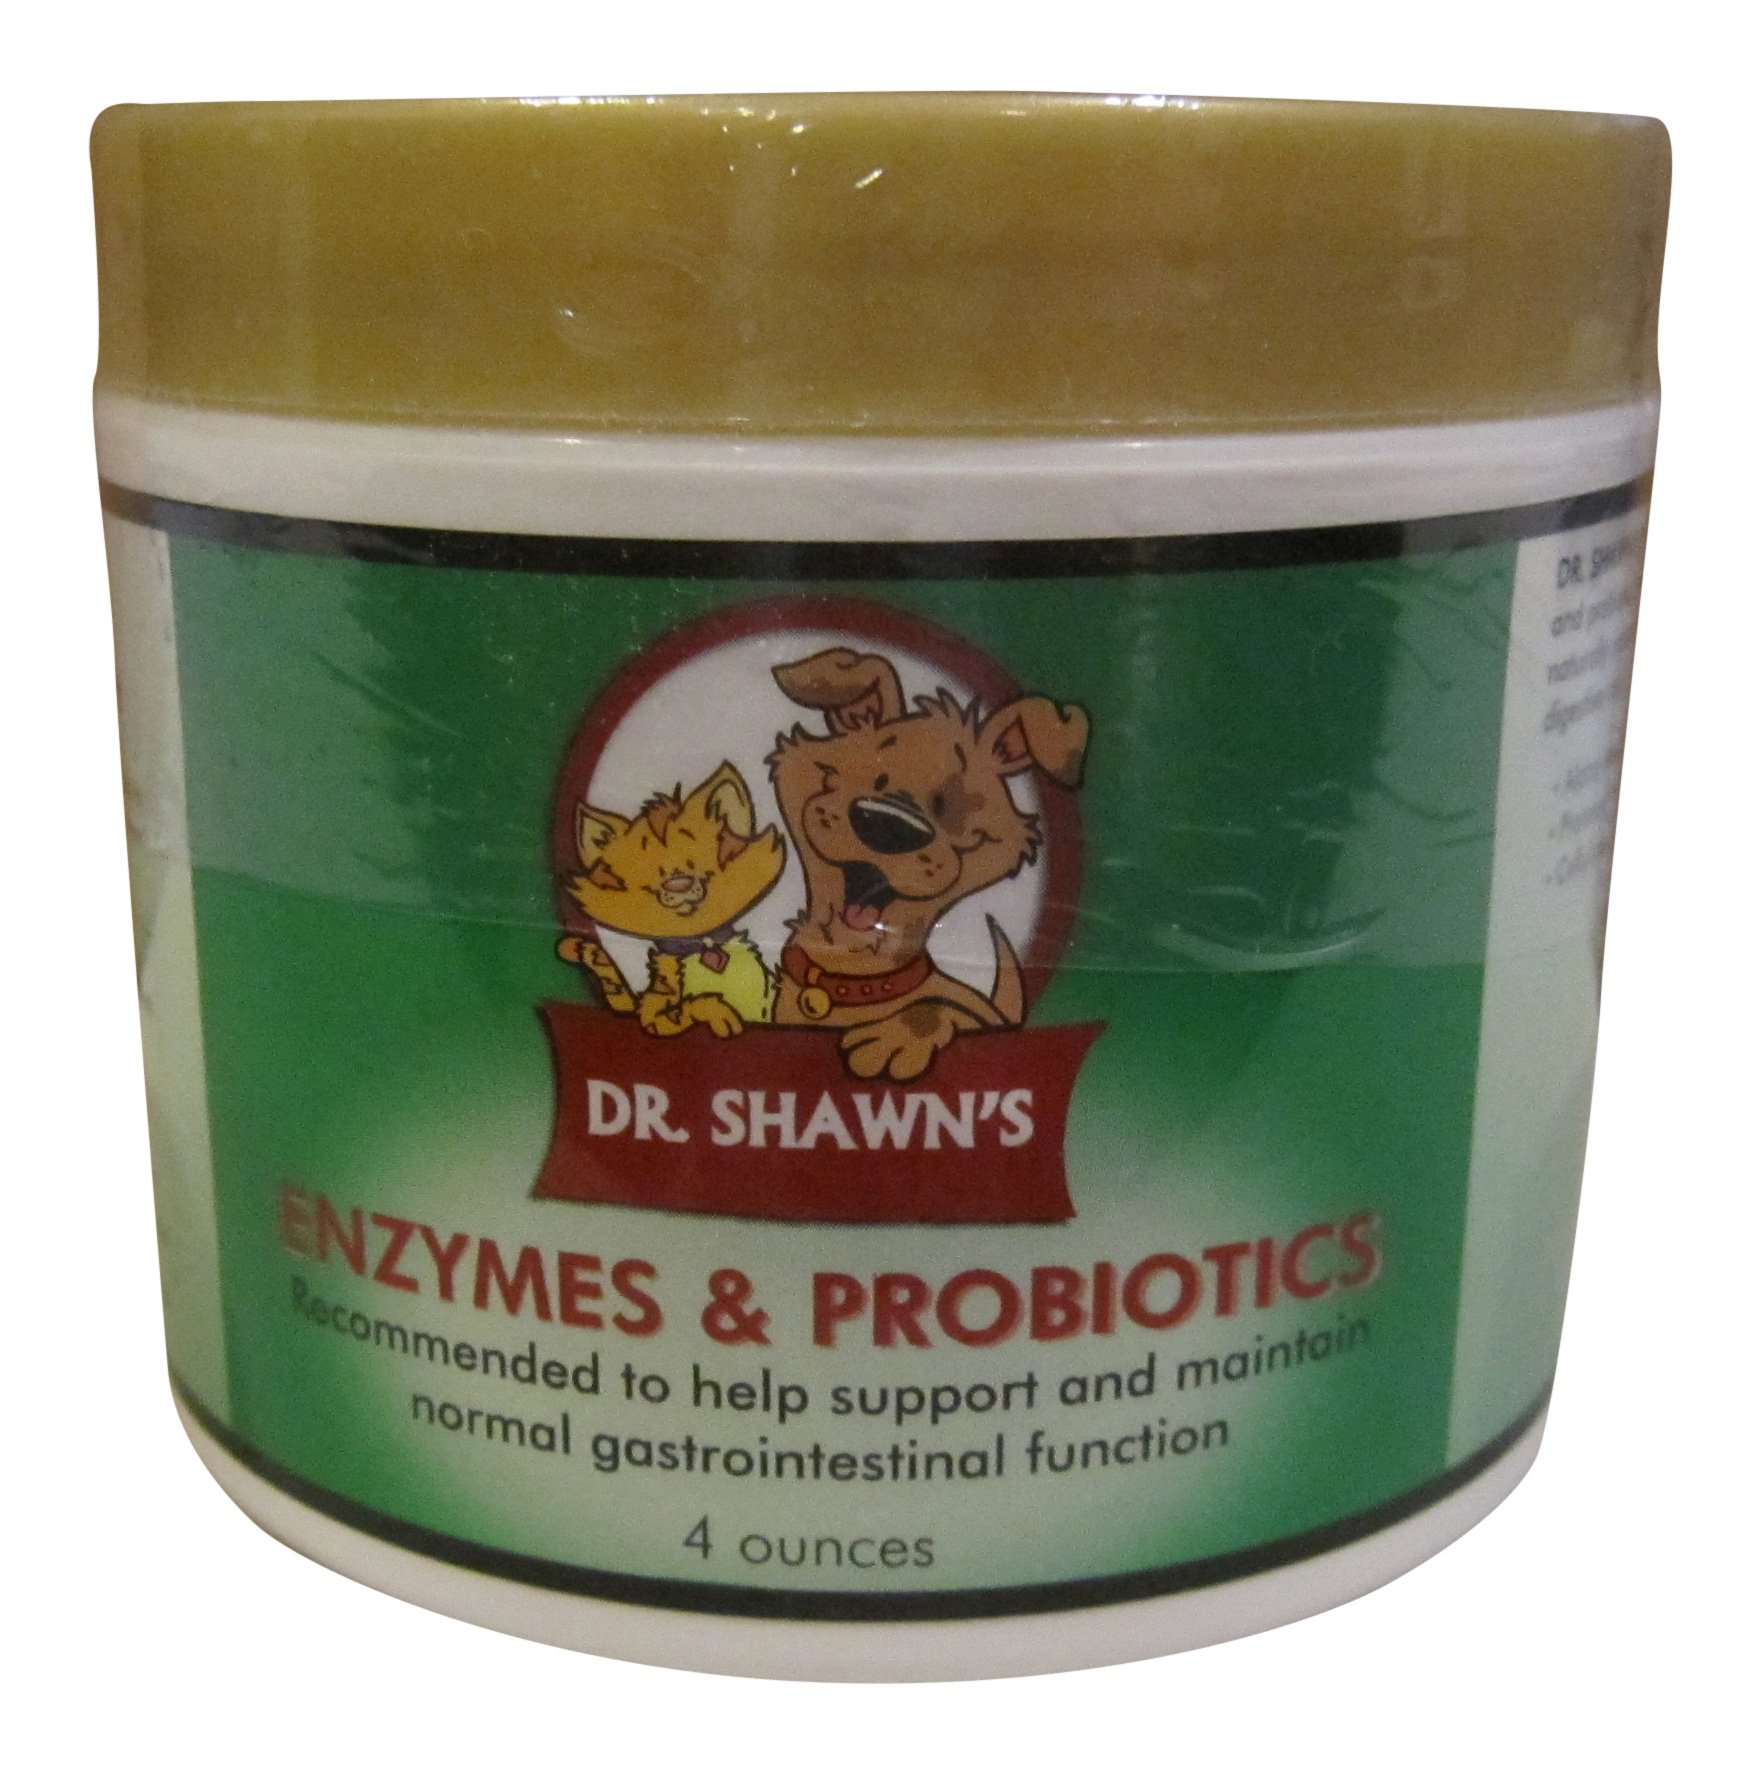 Dr Shawn's Enzymes & Probiotics for Dogs and Cats (4 oz), Supports Healthy Digestion and Overall Health, 100% Natural, Made in USA